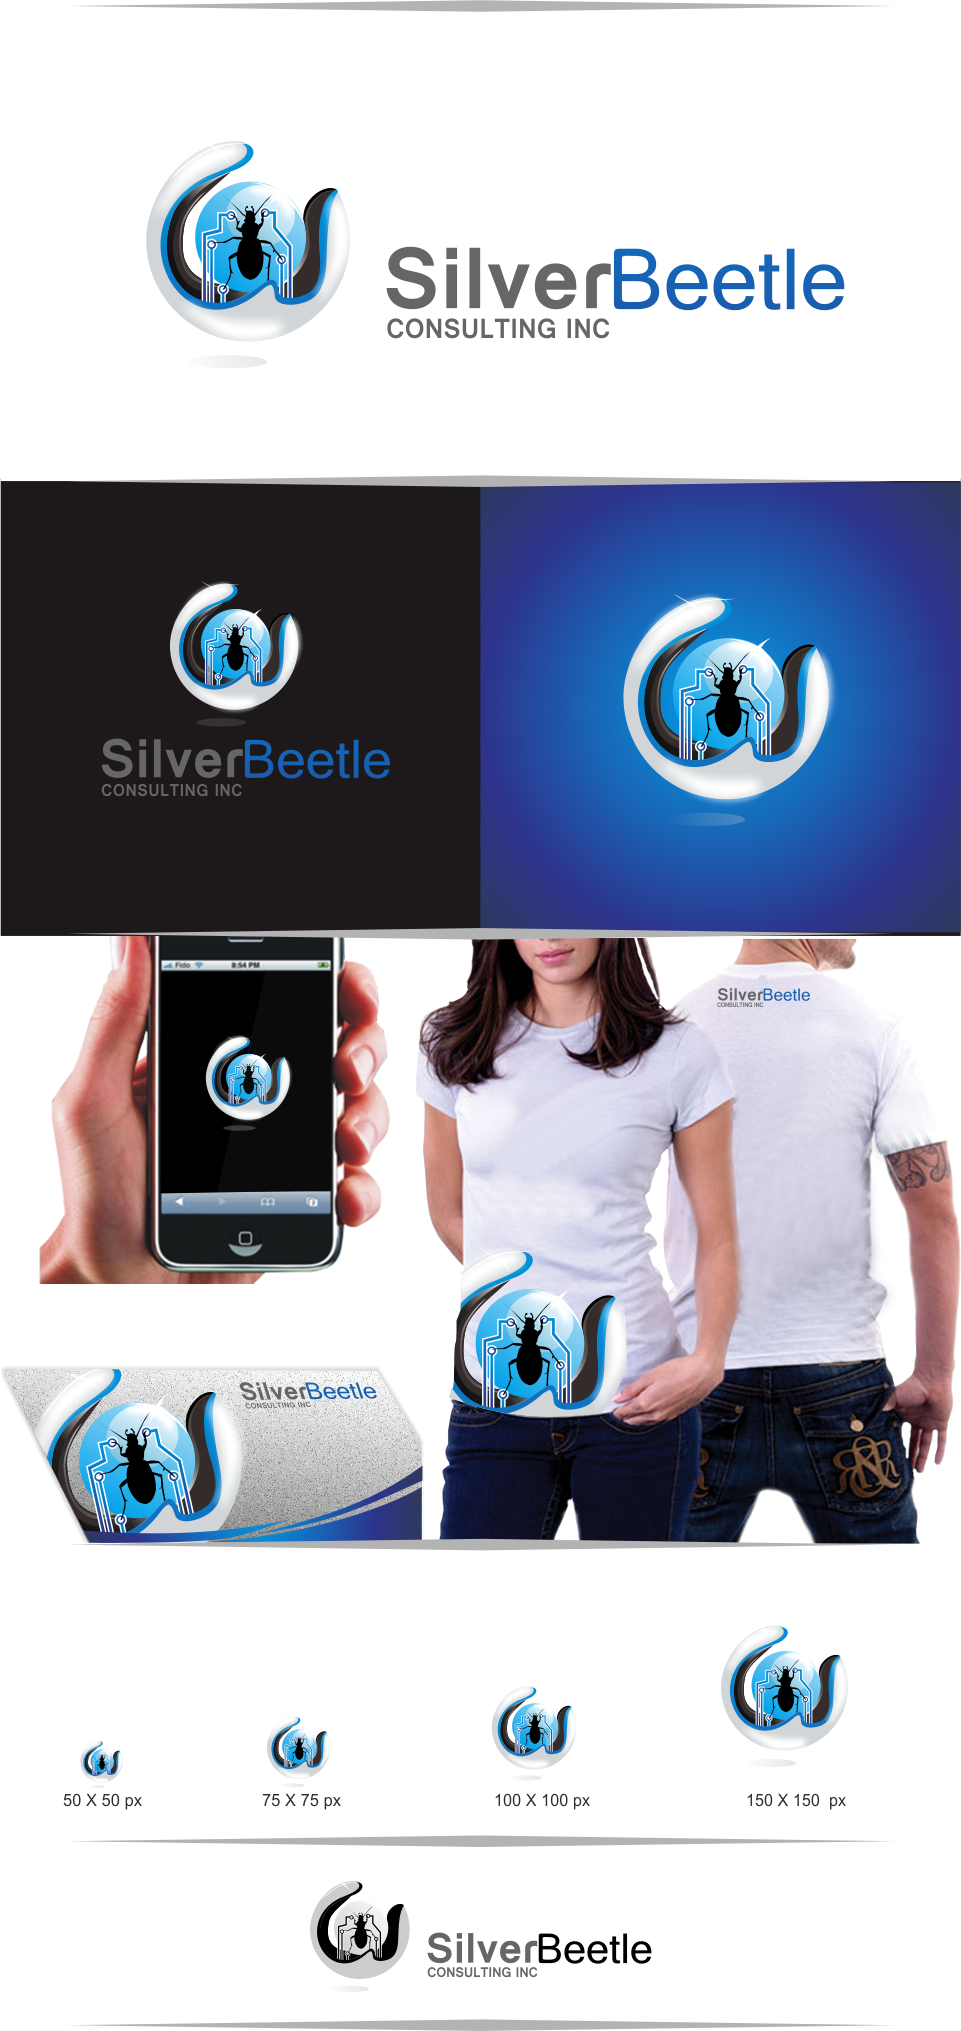 Logo Design by Mitchnick Sunardi - Entry No. 132 in the Logo Design Contest Silver Beetle Consulting Inc. Logo Design.